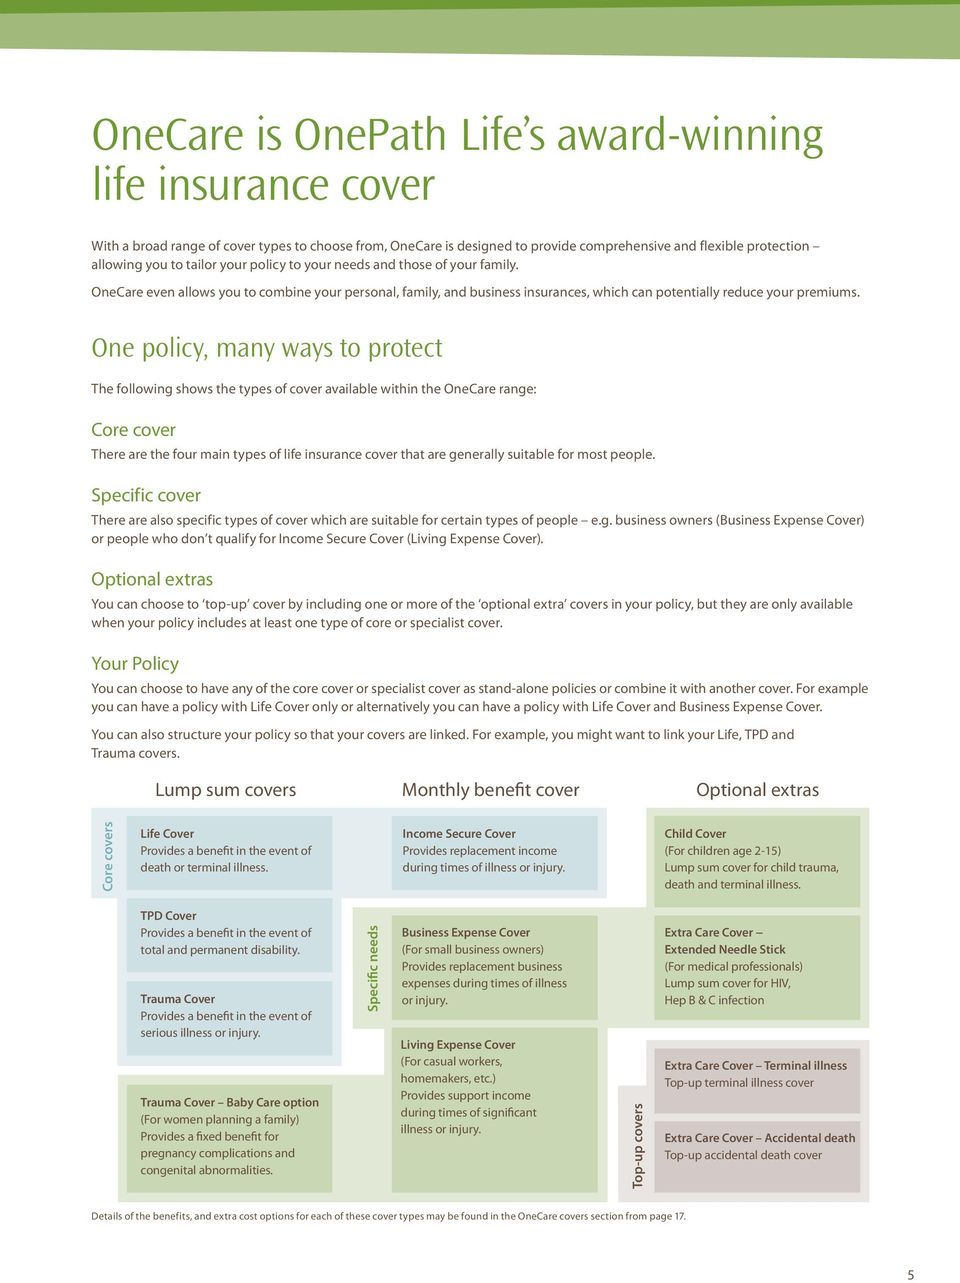 One policy, many ways to protect The following shows the types of cover available within the OneCare range: Core cover There are the four main types of life insurance cover that are generally